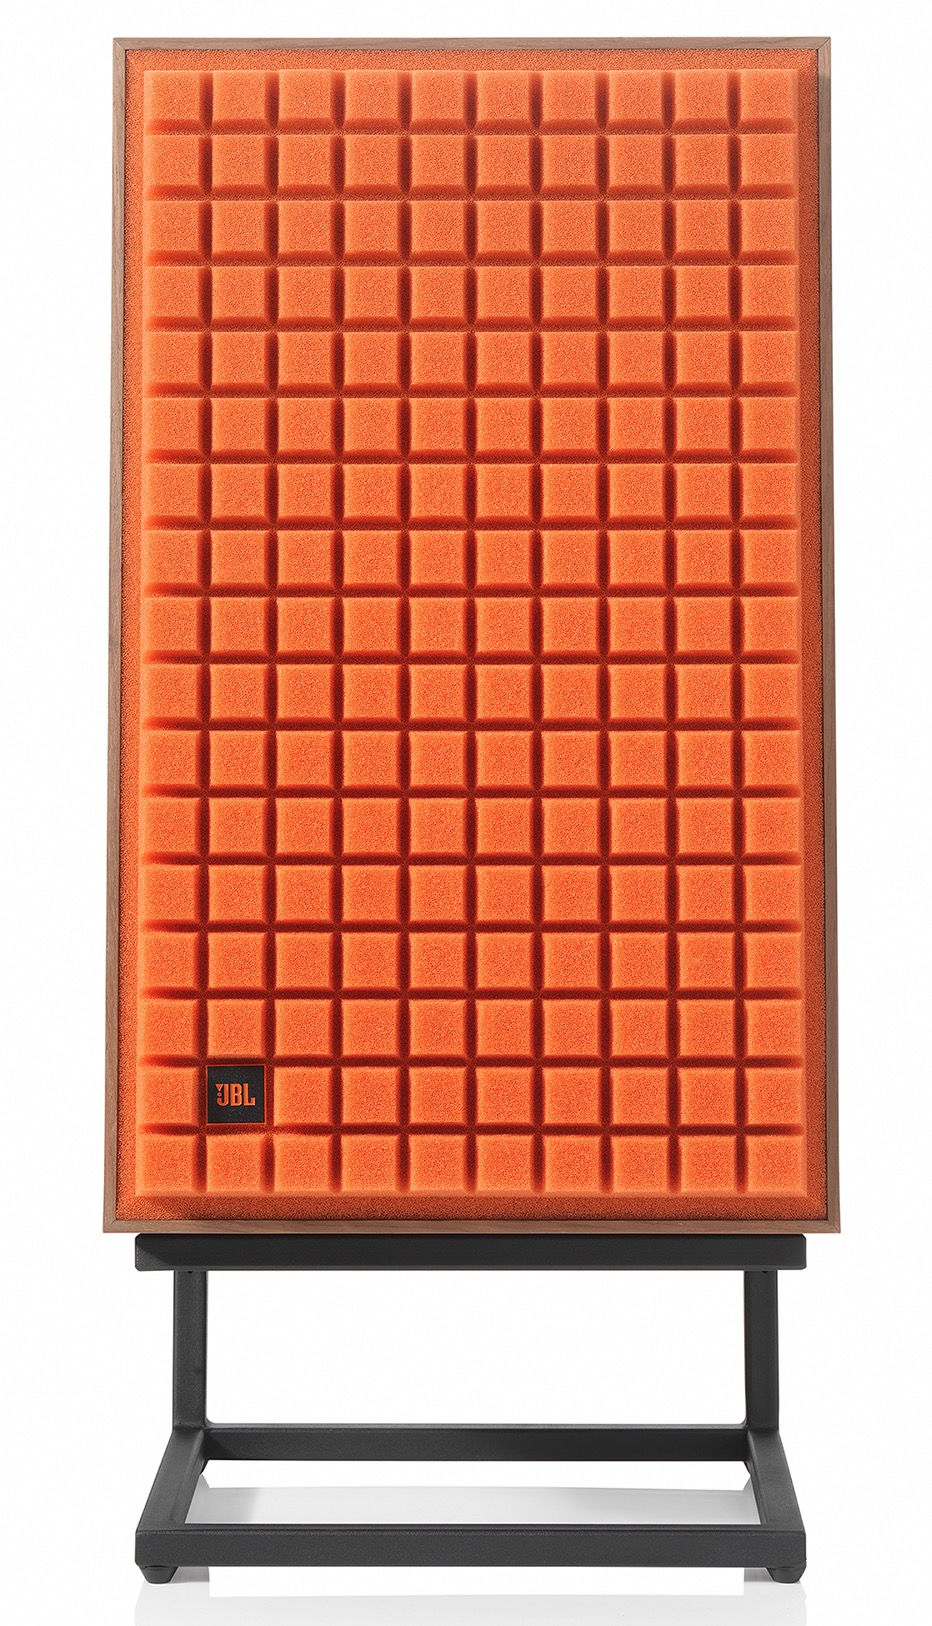 L100 Classic Speaker From JBL - The Audiophile Man